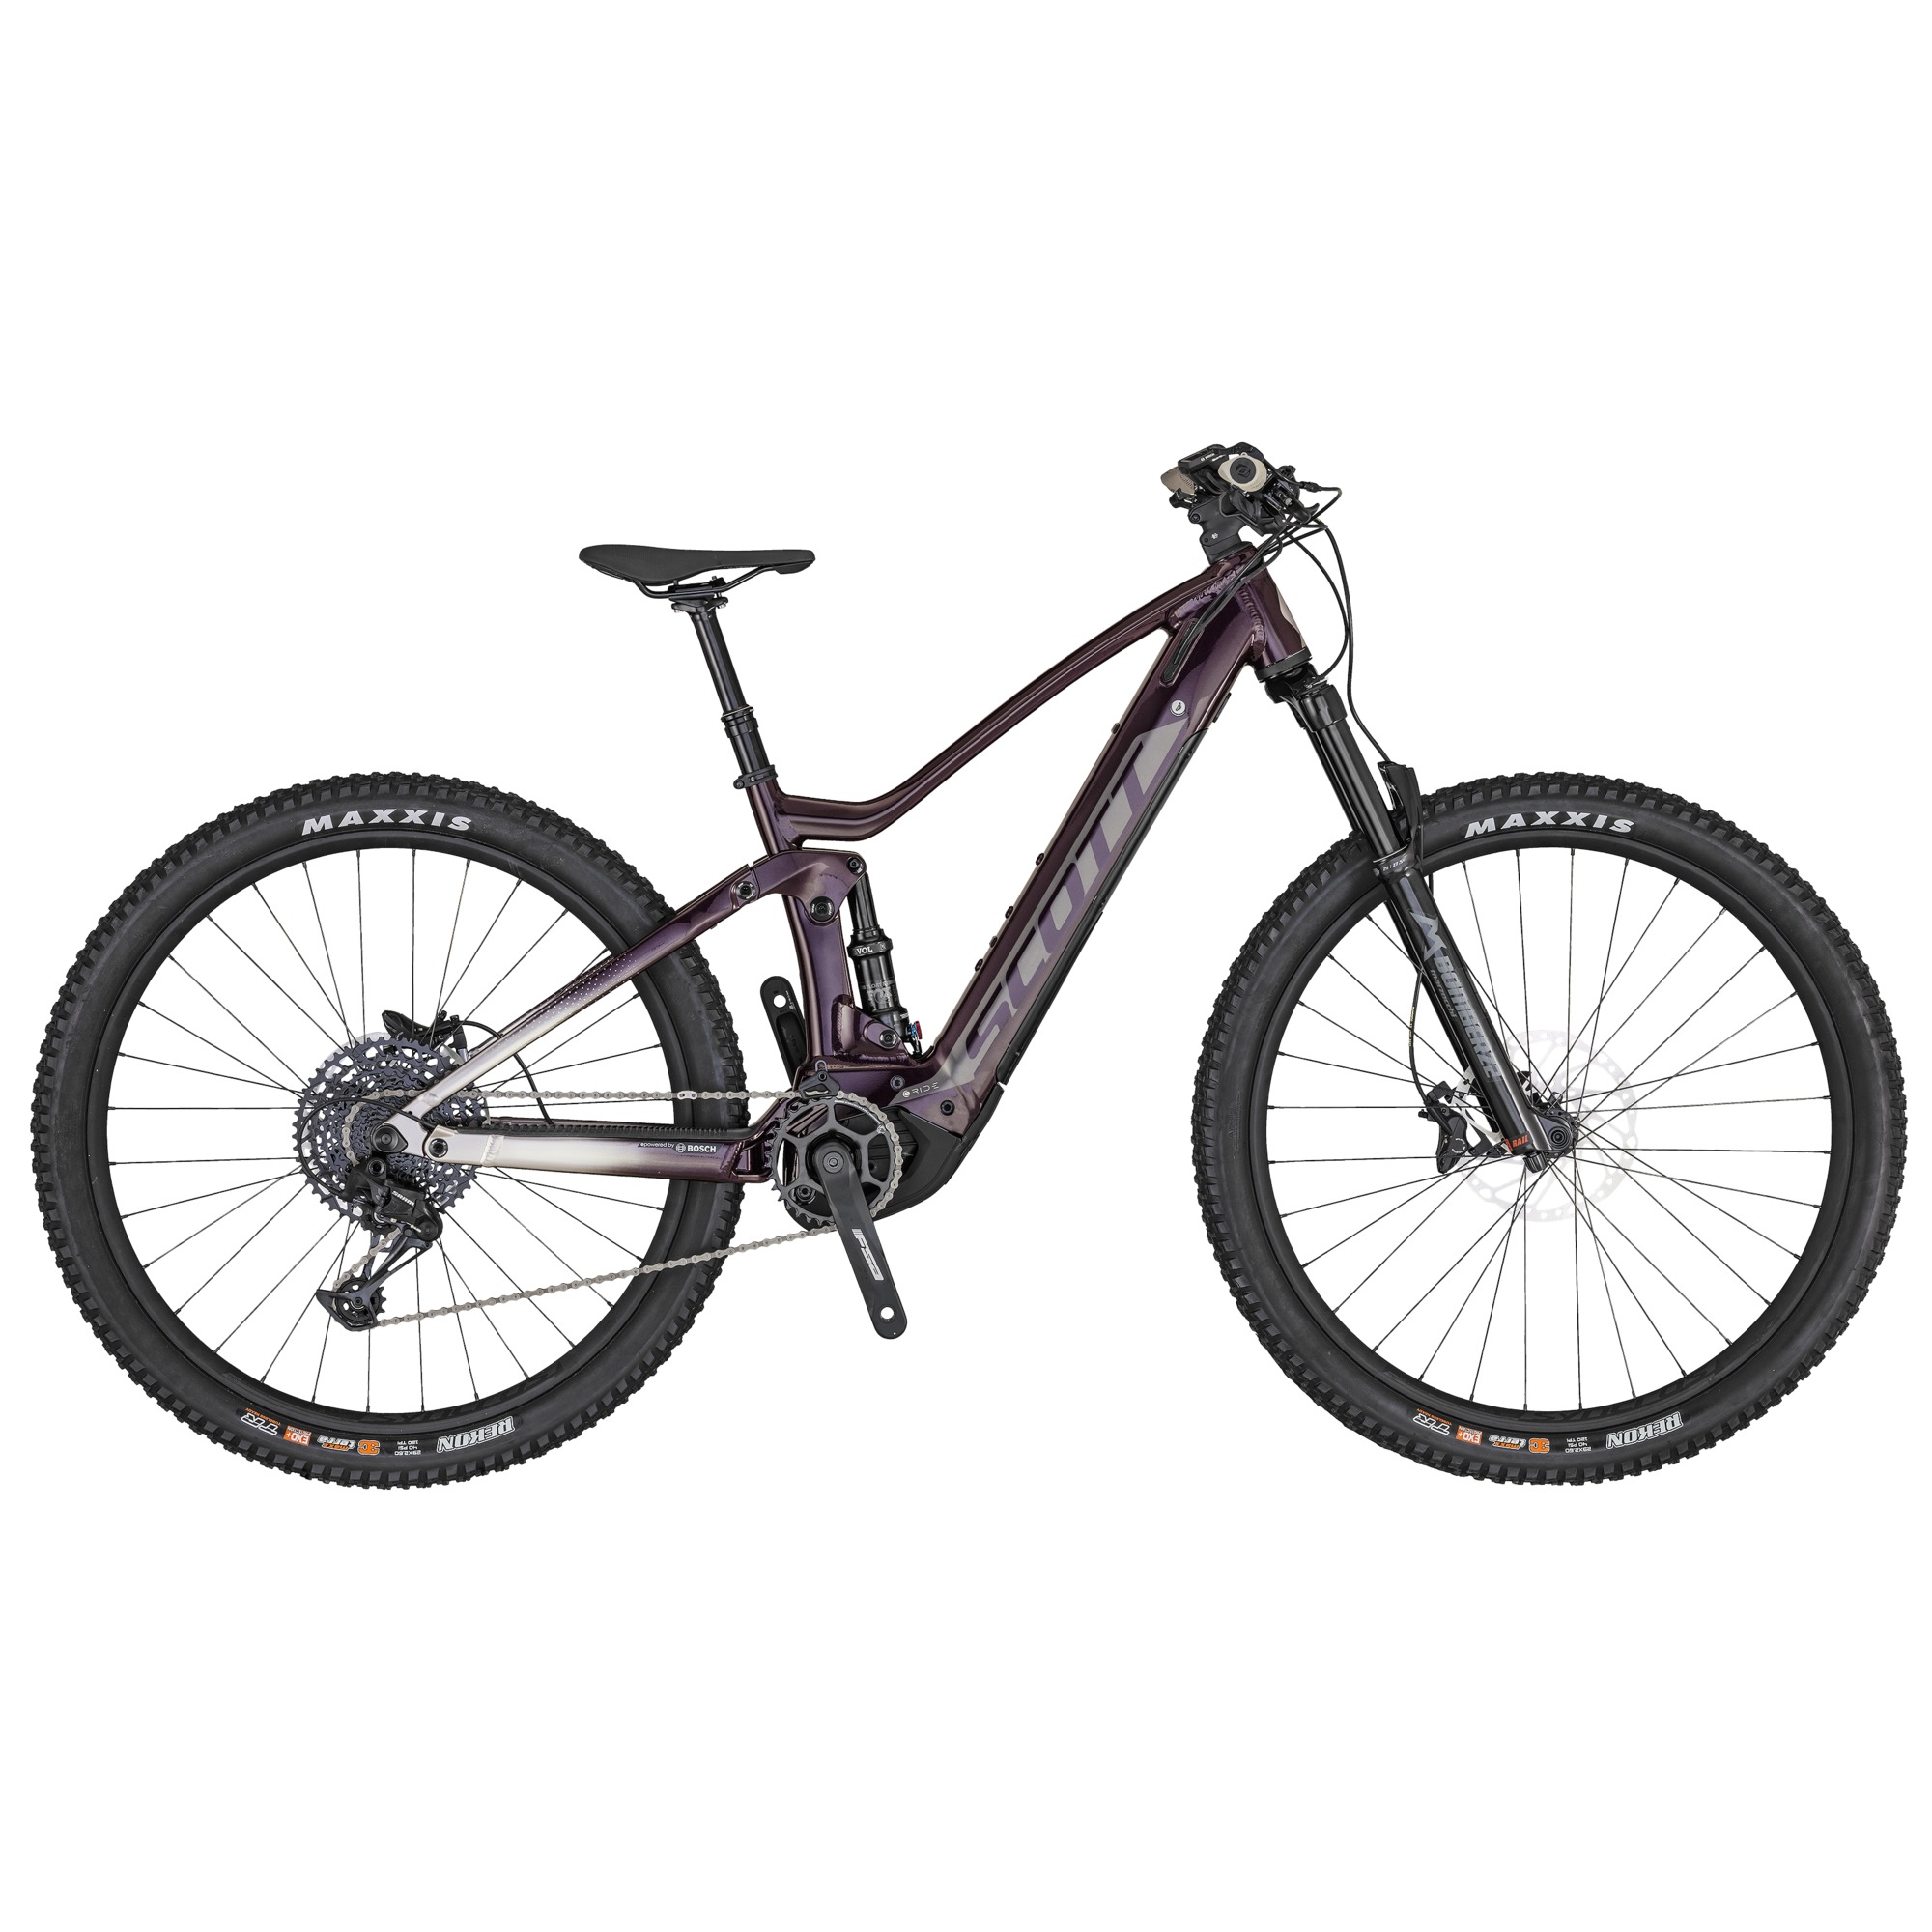 scott-contessa-strike-eride-910-bike-008